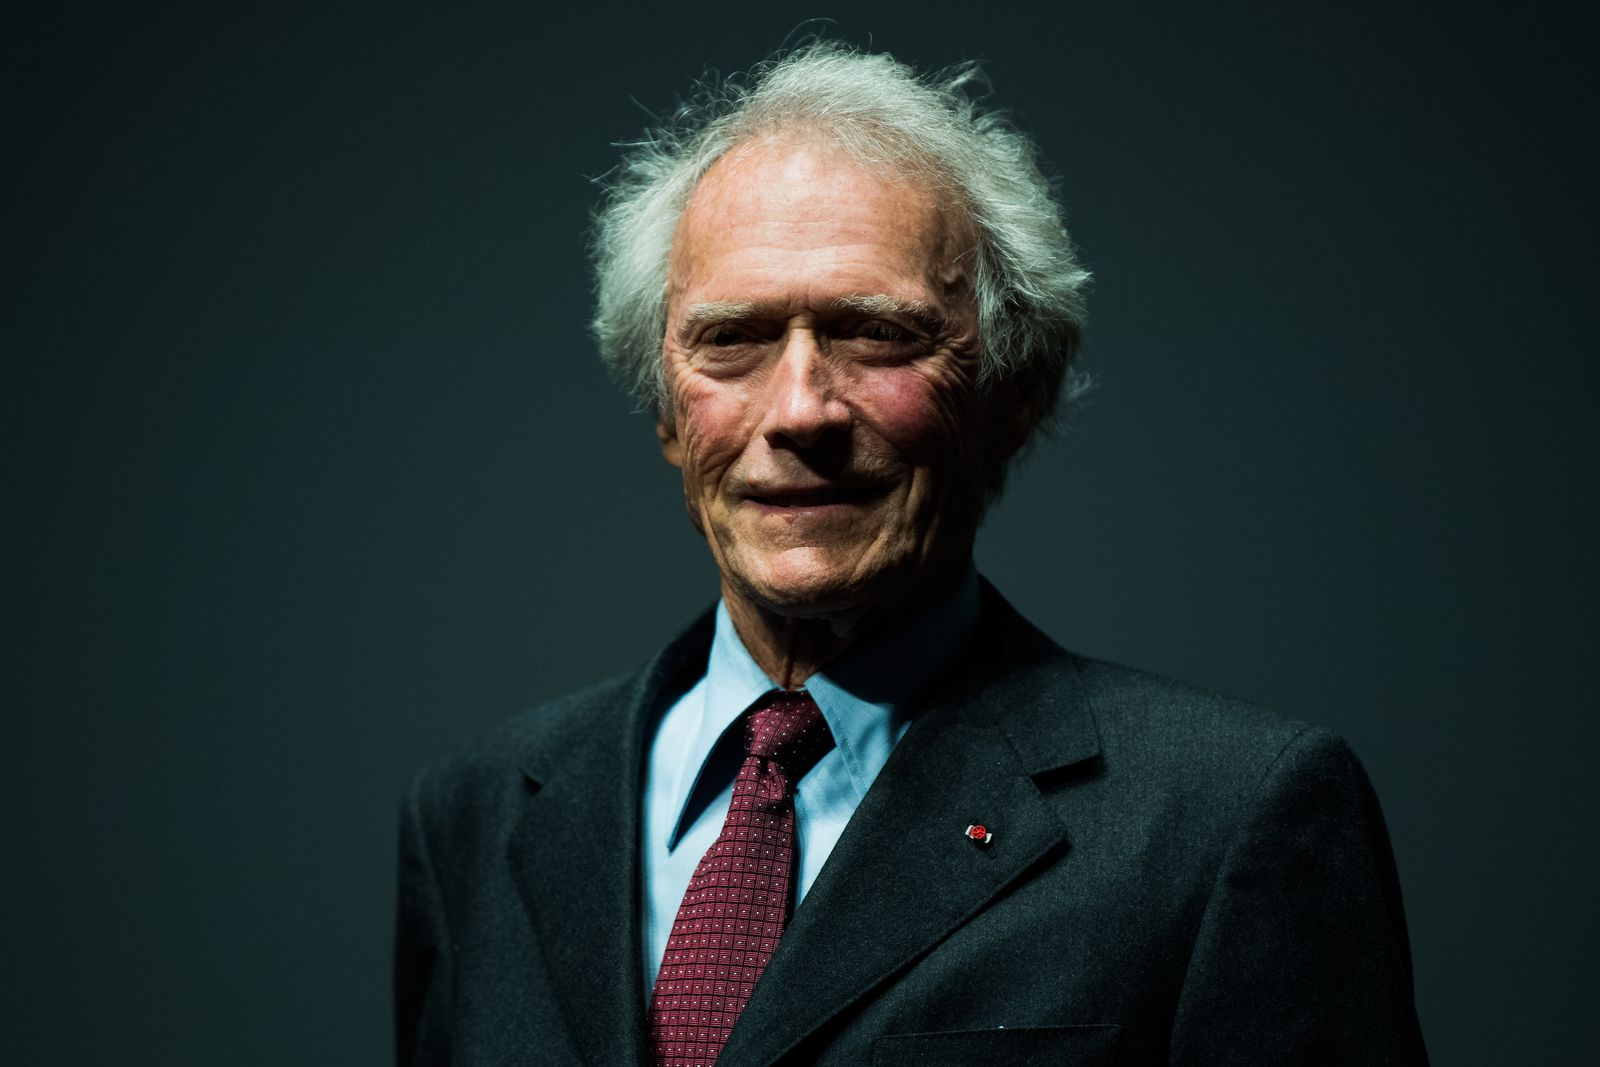 Clint Eastwood on stage during the 'Unforgiven' restored copy presentation during the 70th annual Cannes Film Festival at Salle Debussy on May 20, 2017 | Photo: Getty Images